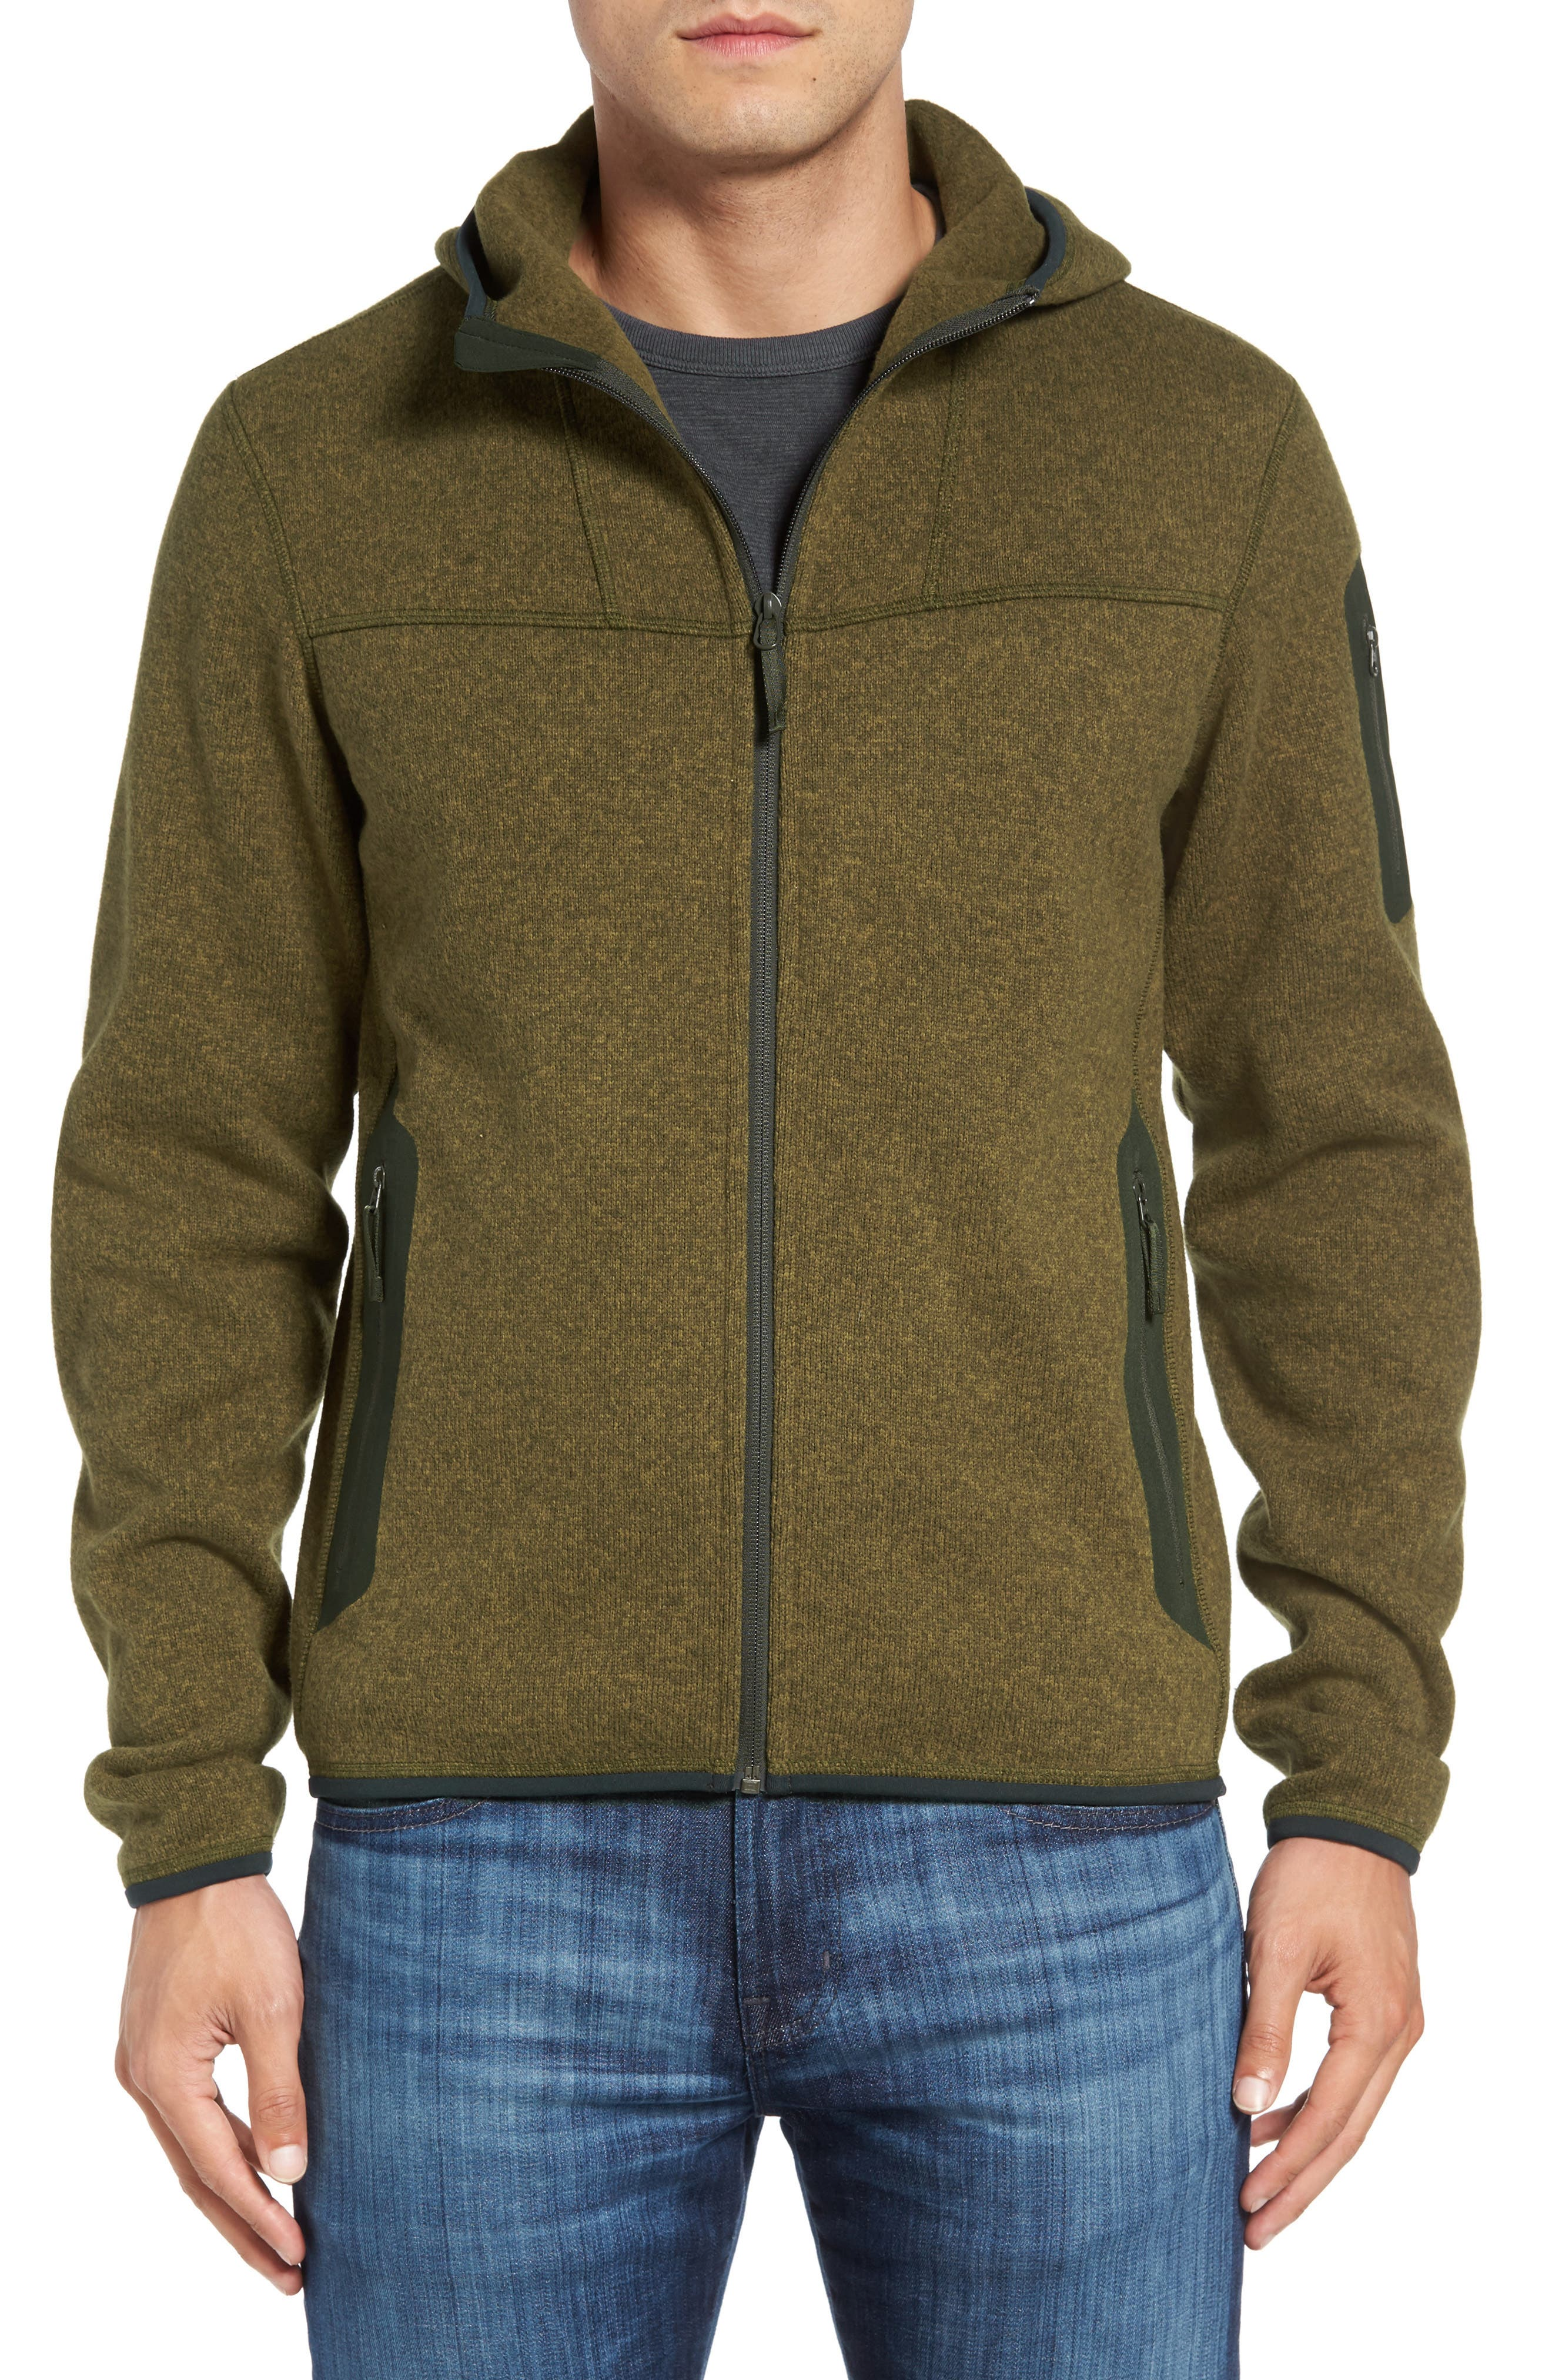 ARC'TERYX 'Covert' Relaxed Fit Technical Fleece Full Zip